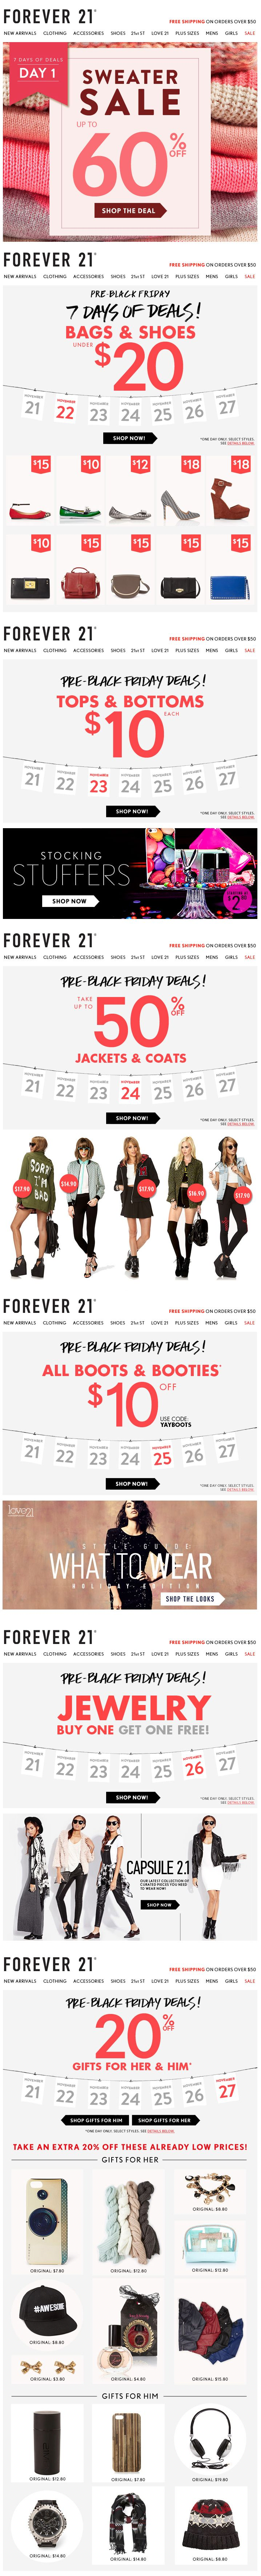 Forever 21 : 7 Days Of Gifts